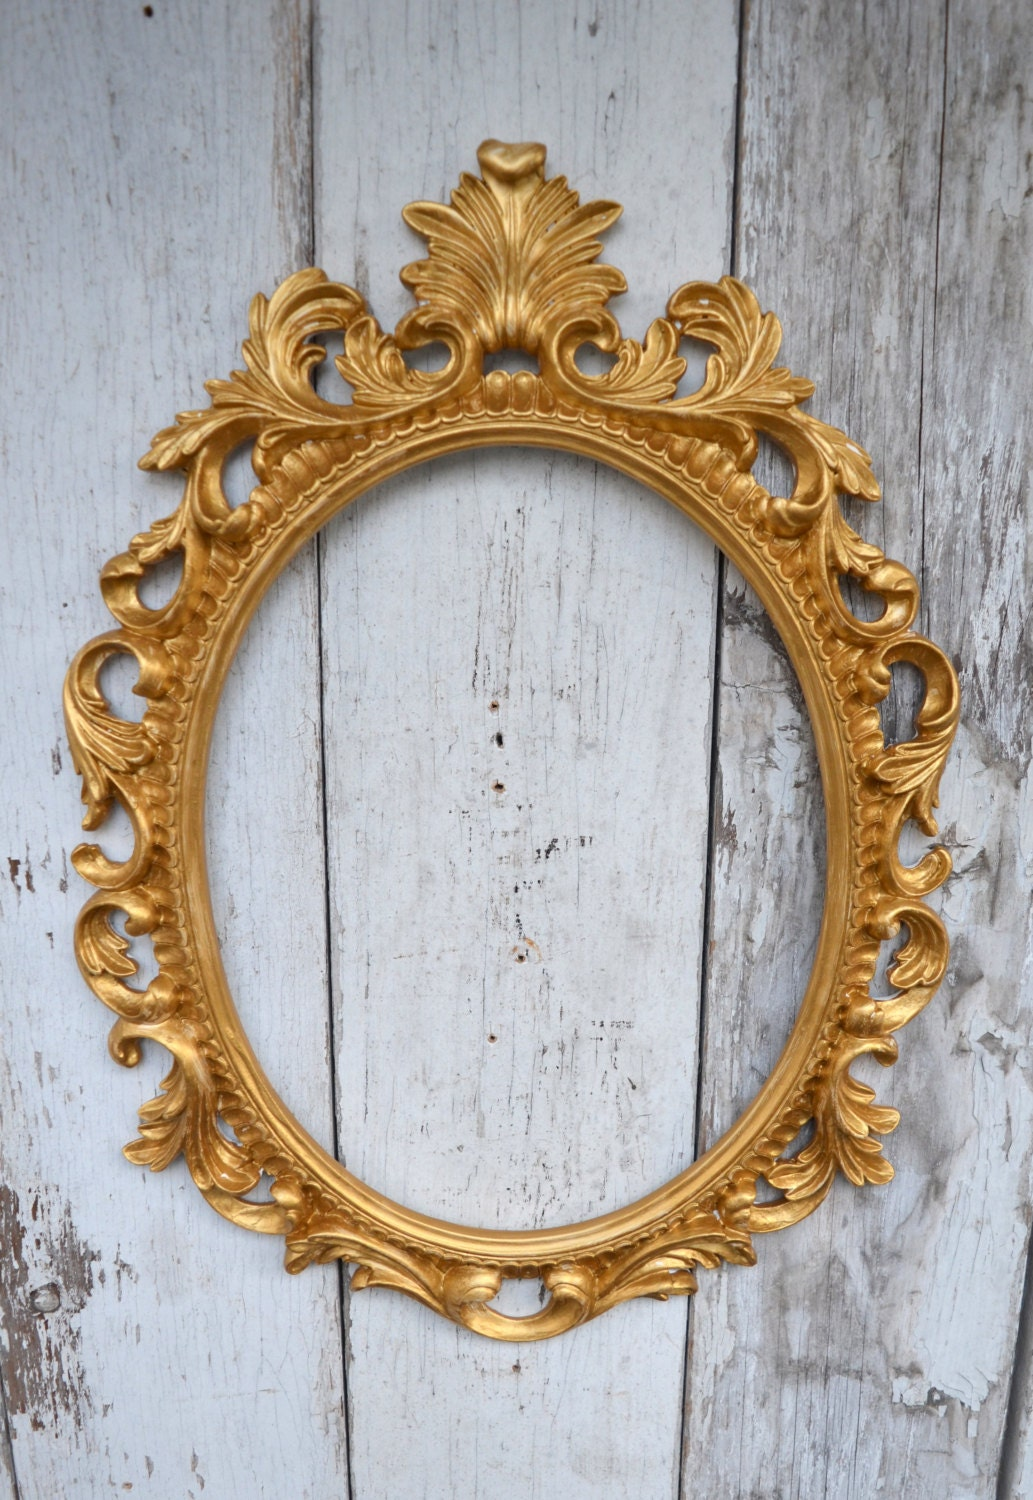 Oval picture frame large ornate baroque fancy gold portrait for Large portrait mirror